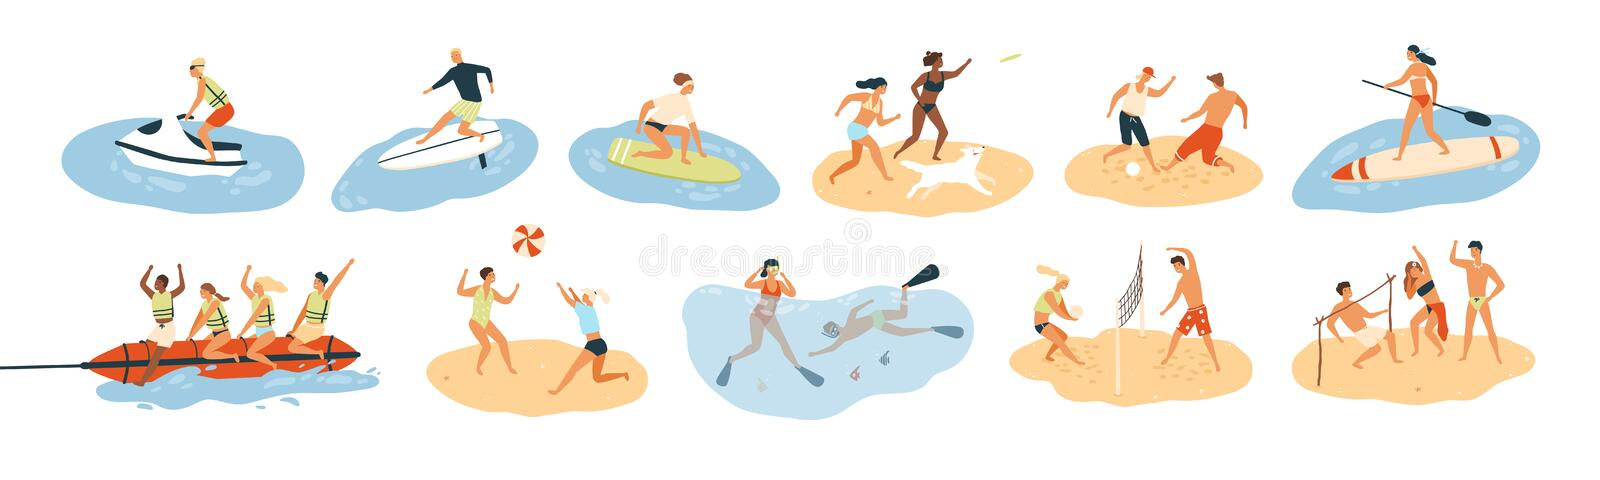 Set of people performing summer sports and leisure outdoor activities at beach, in sea or ocean - playing games, diving stock illustration